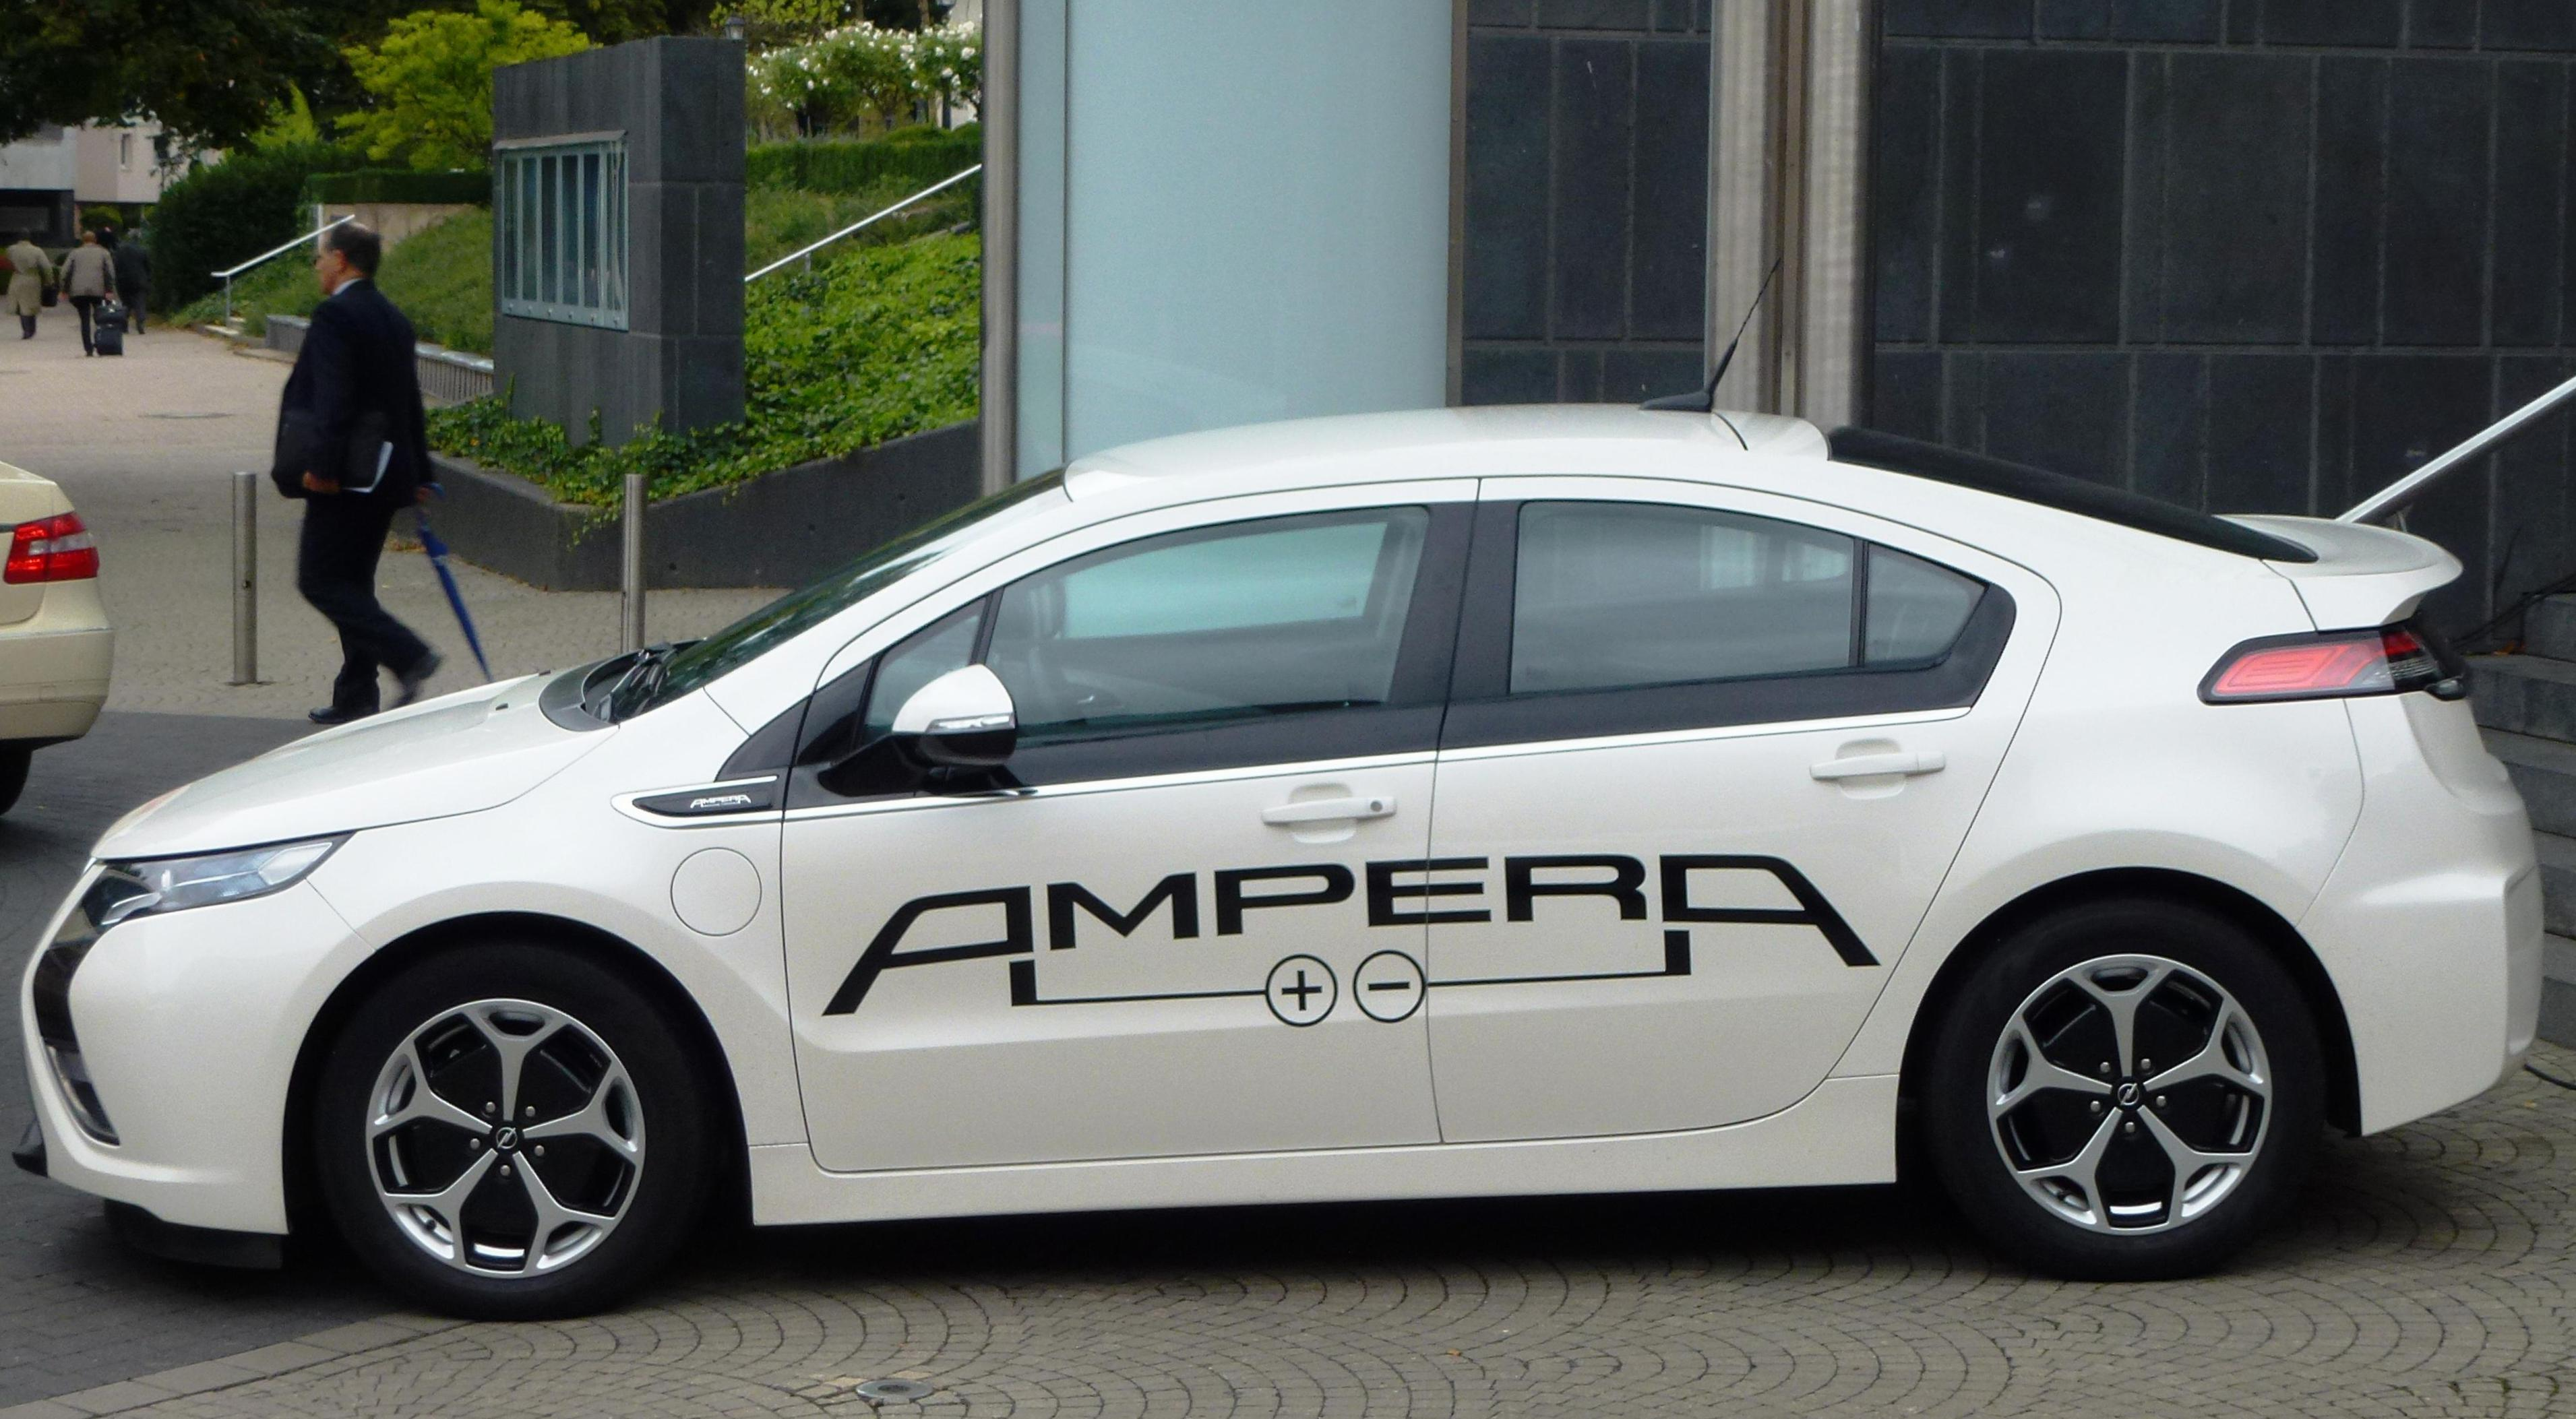 Ampera Opel spec sedan